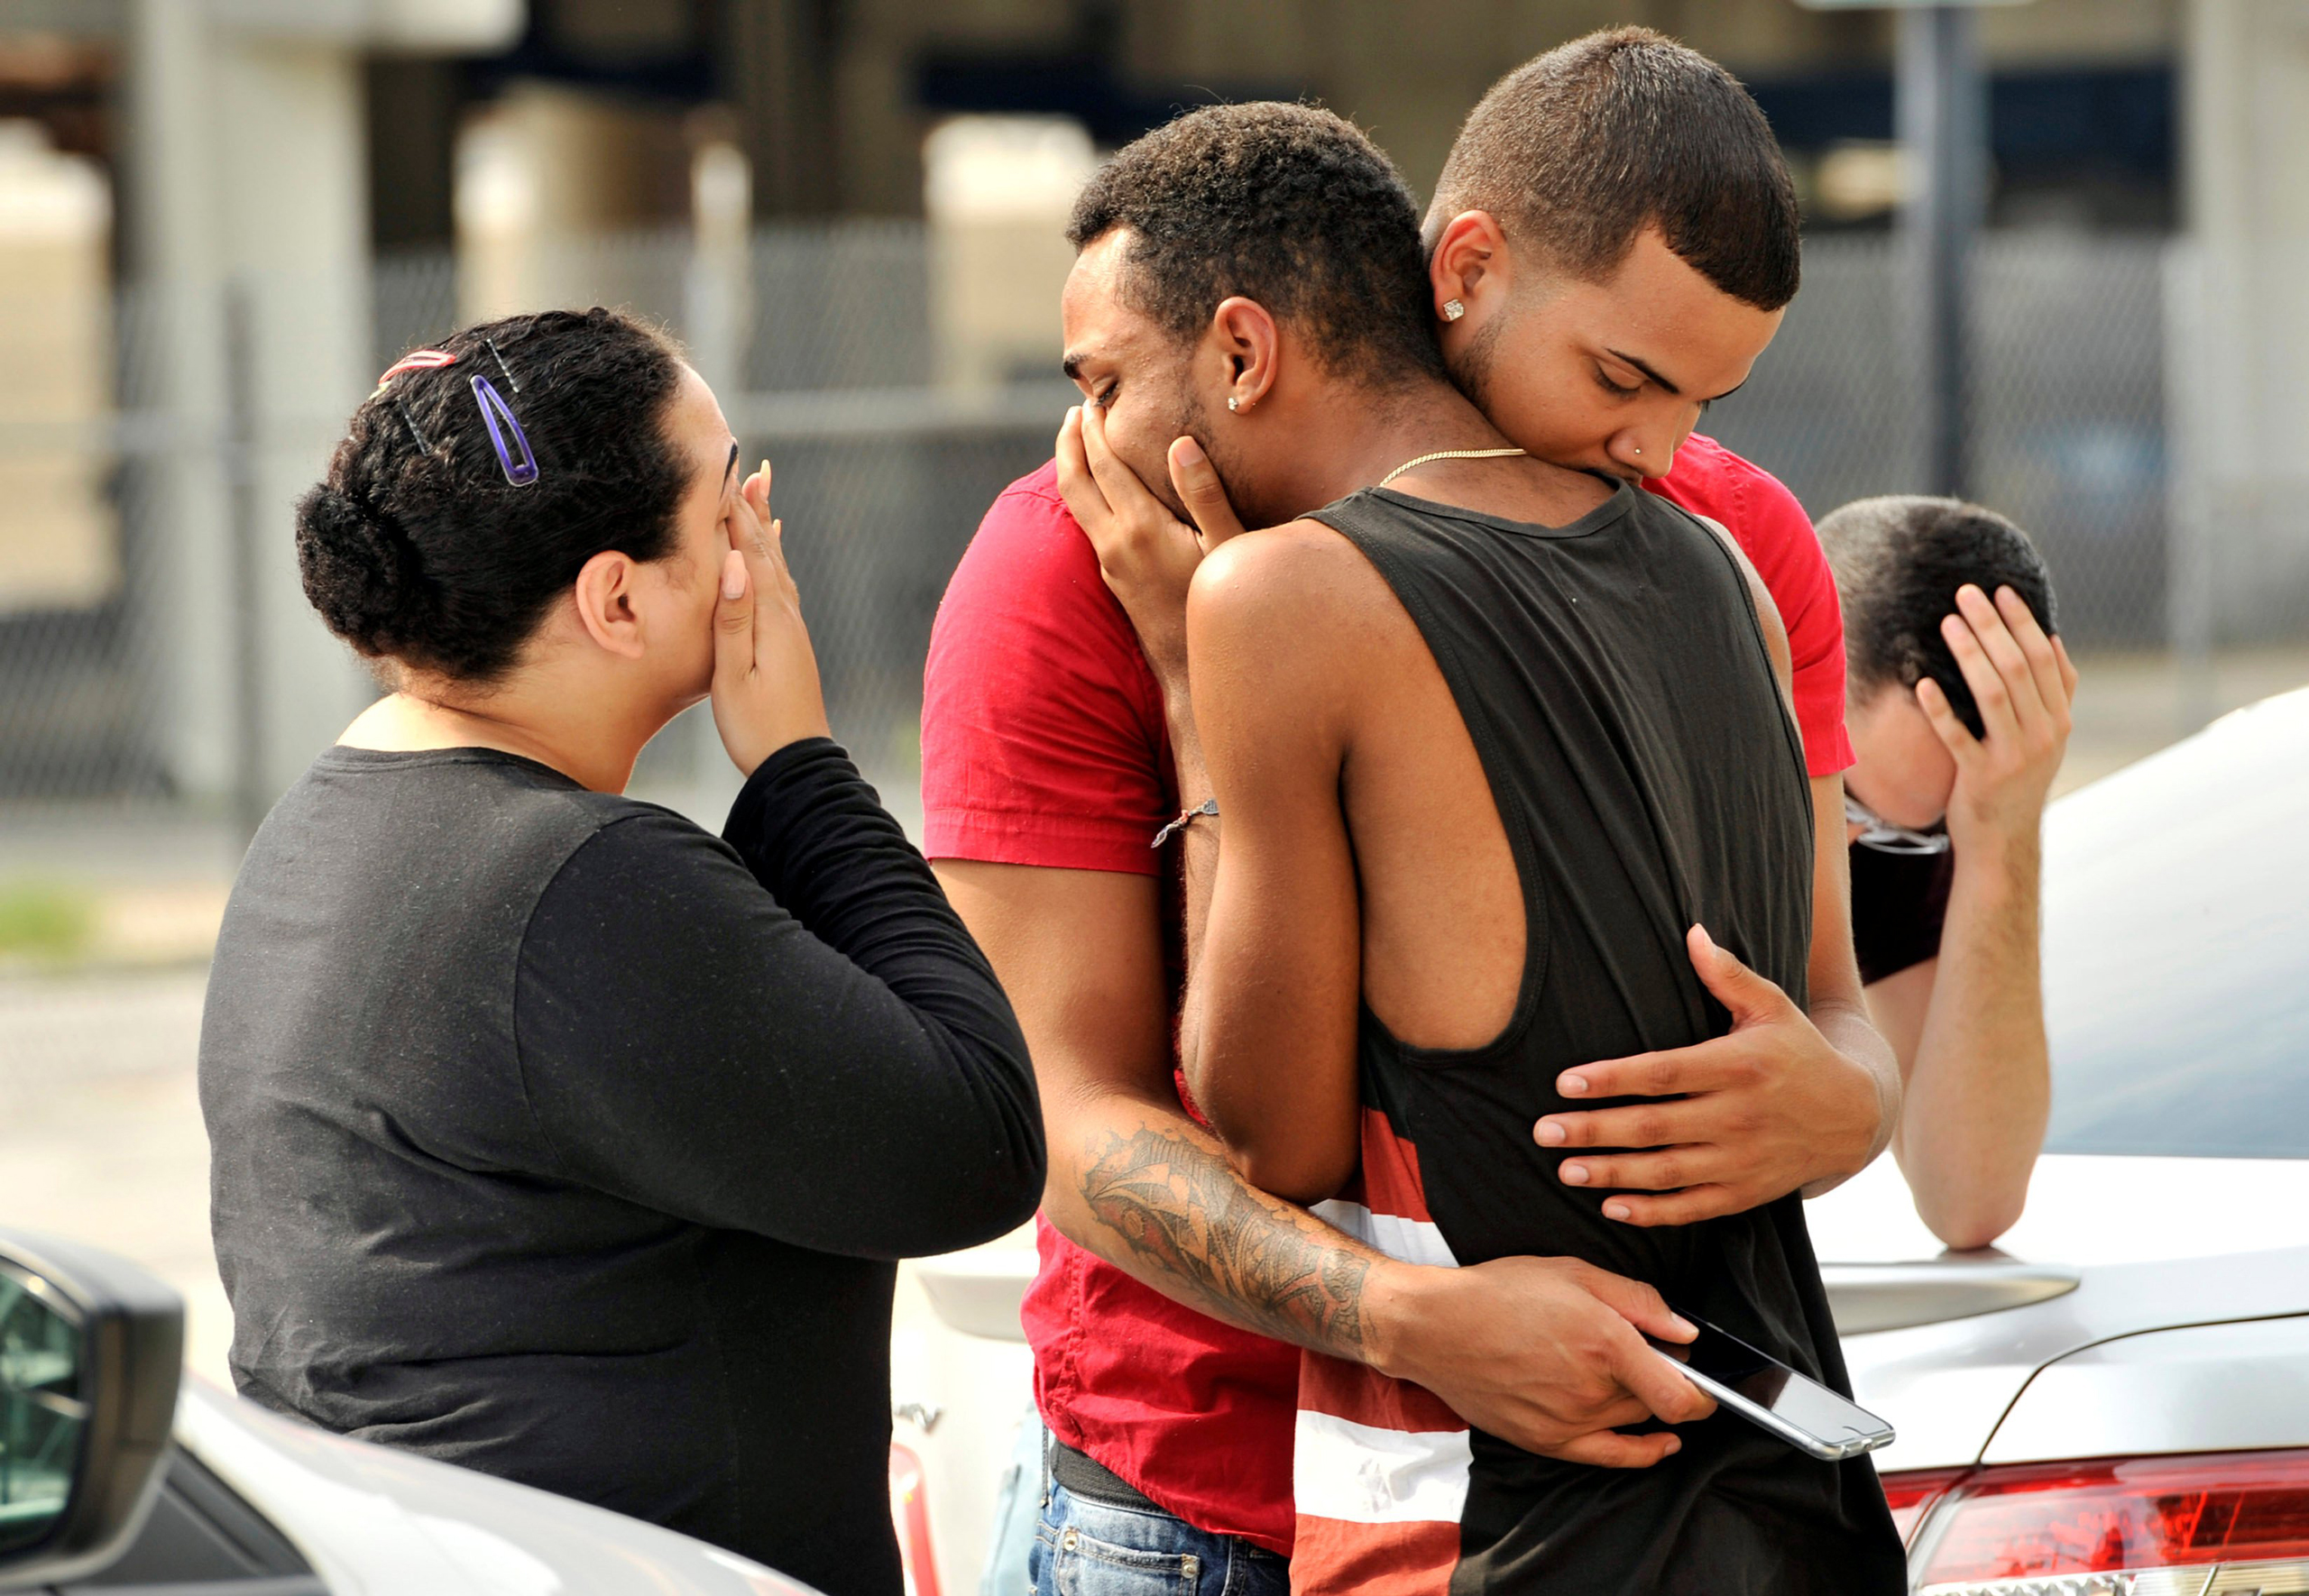 Friends and family members embrace outside the Orlando Police Headquarters during the investigation of a shooting at the Pulse nightclub in Orlando, Fla., on June 13, 2016.